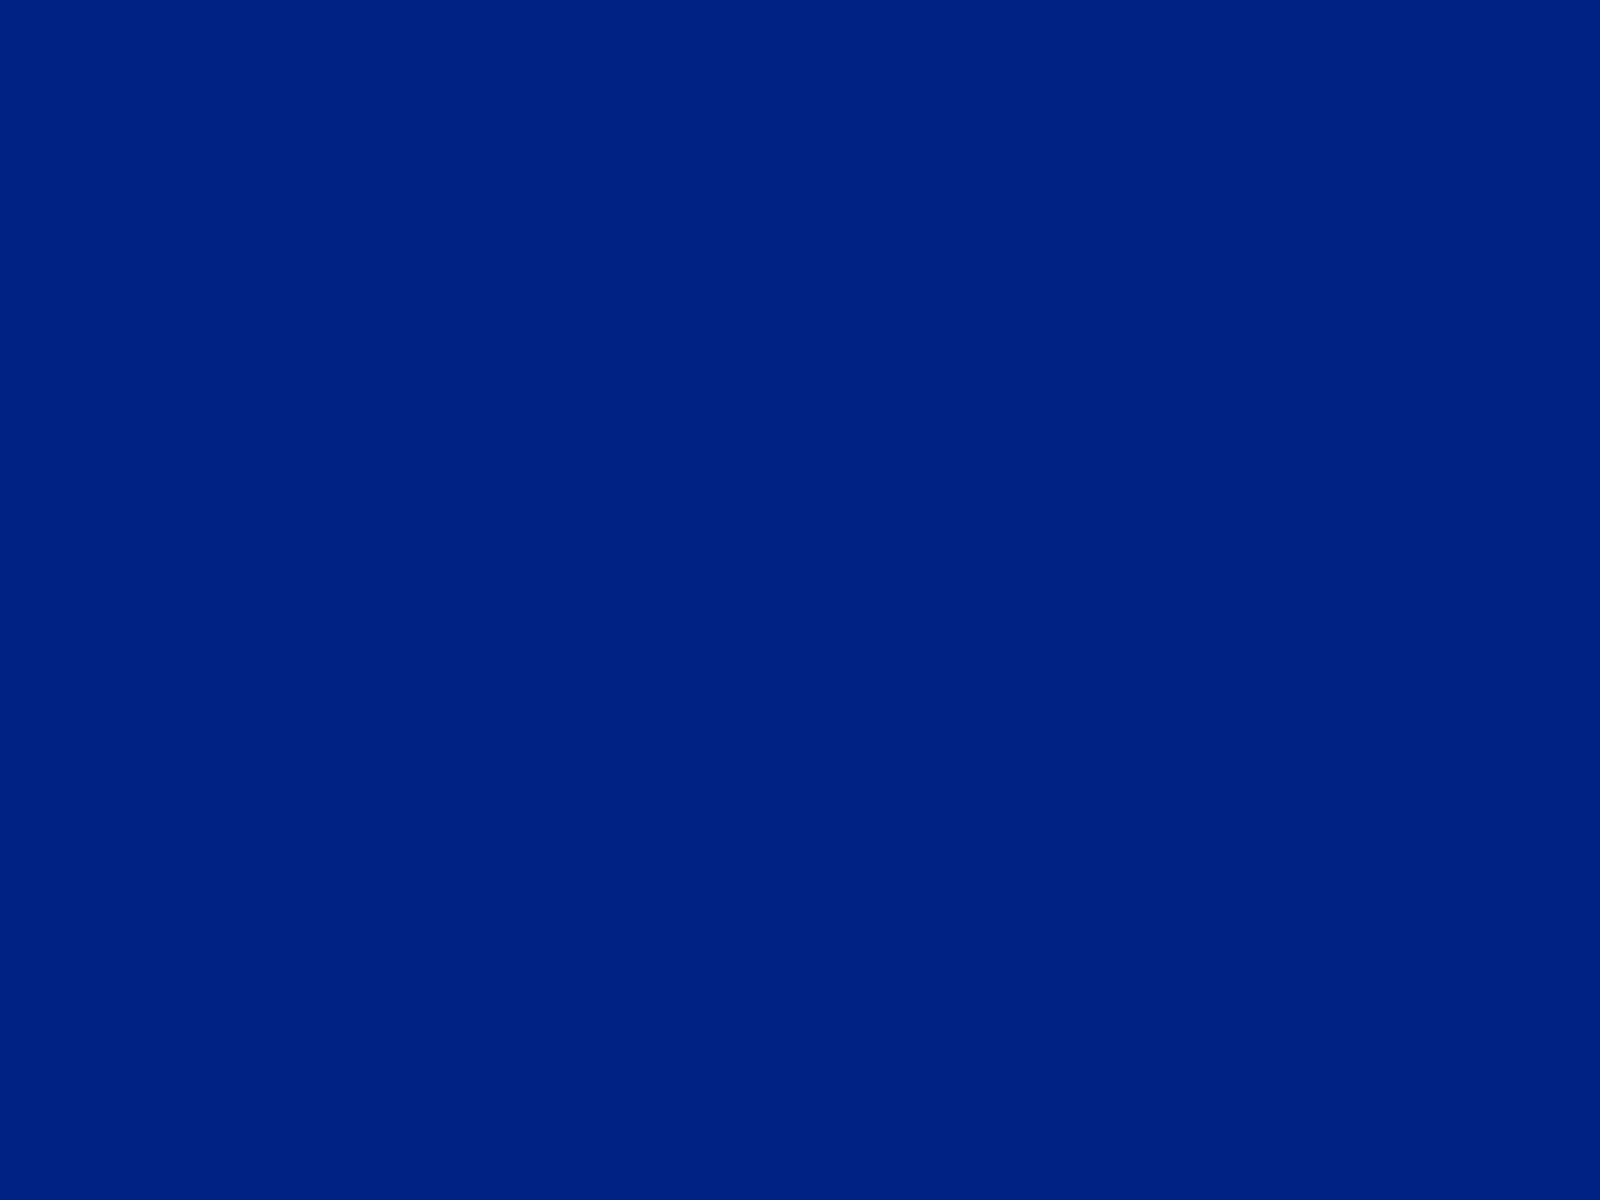 1600x1200 Resolution Blue Solid Color Background